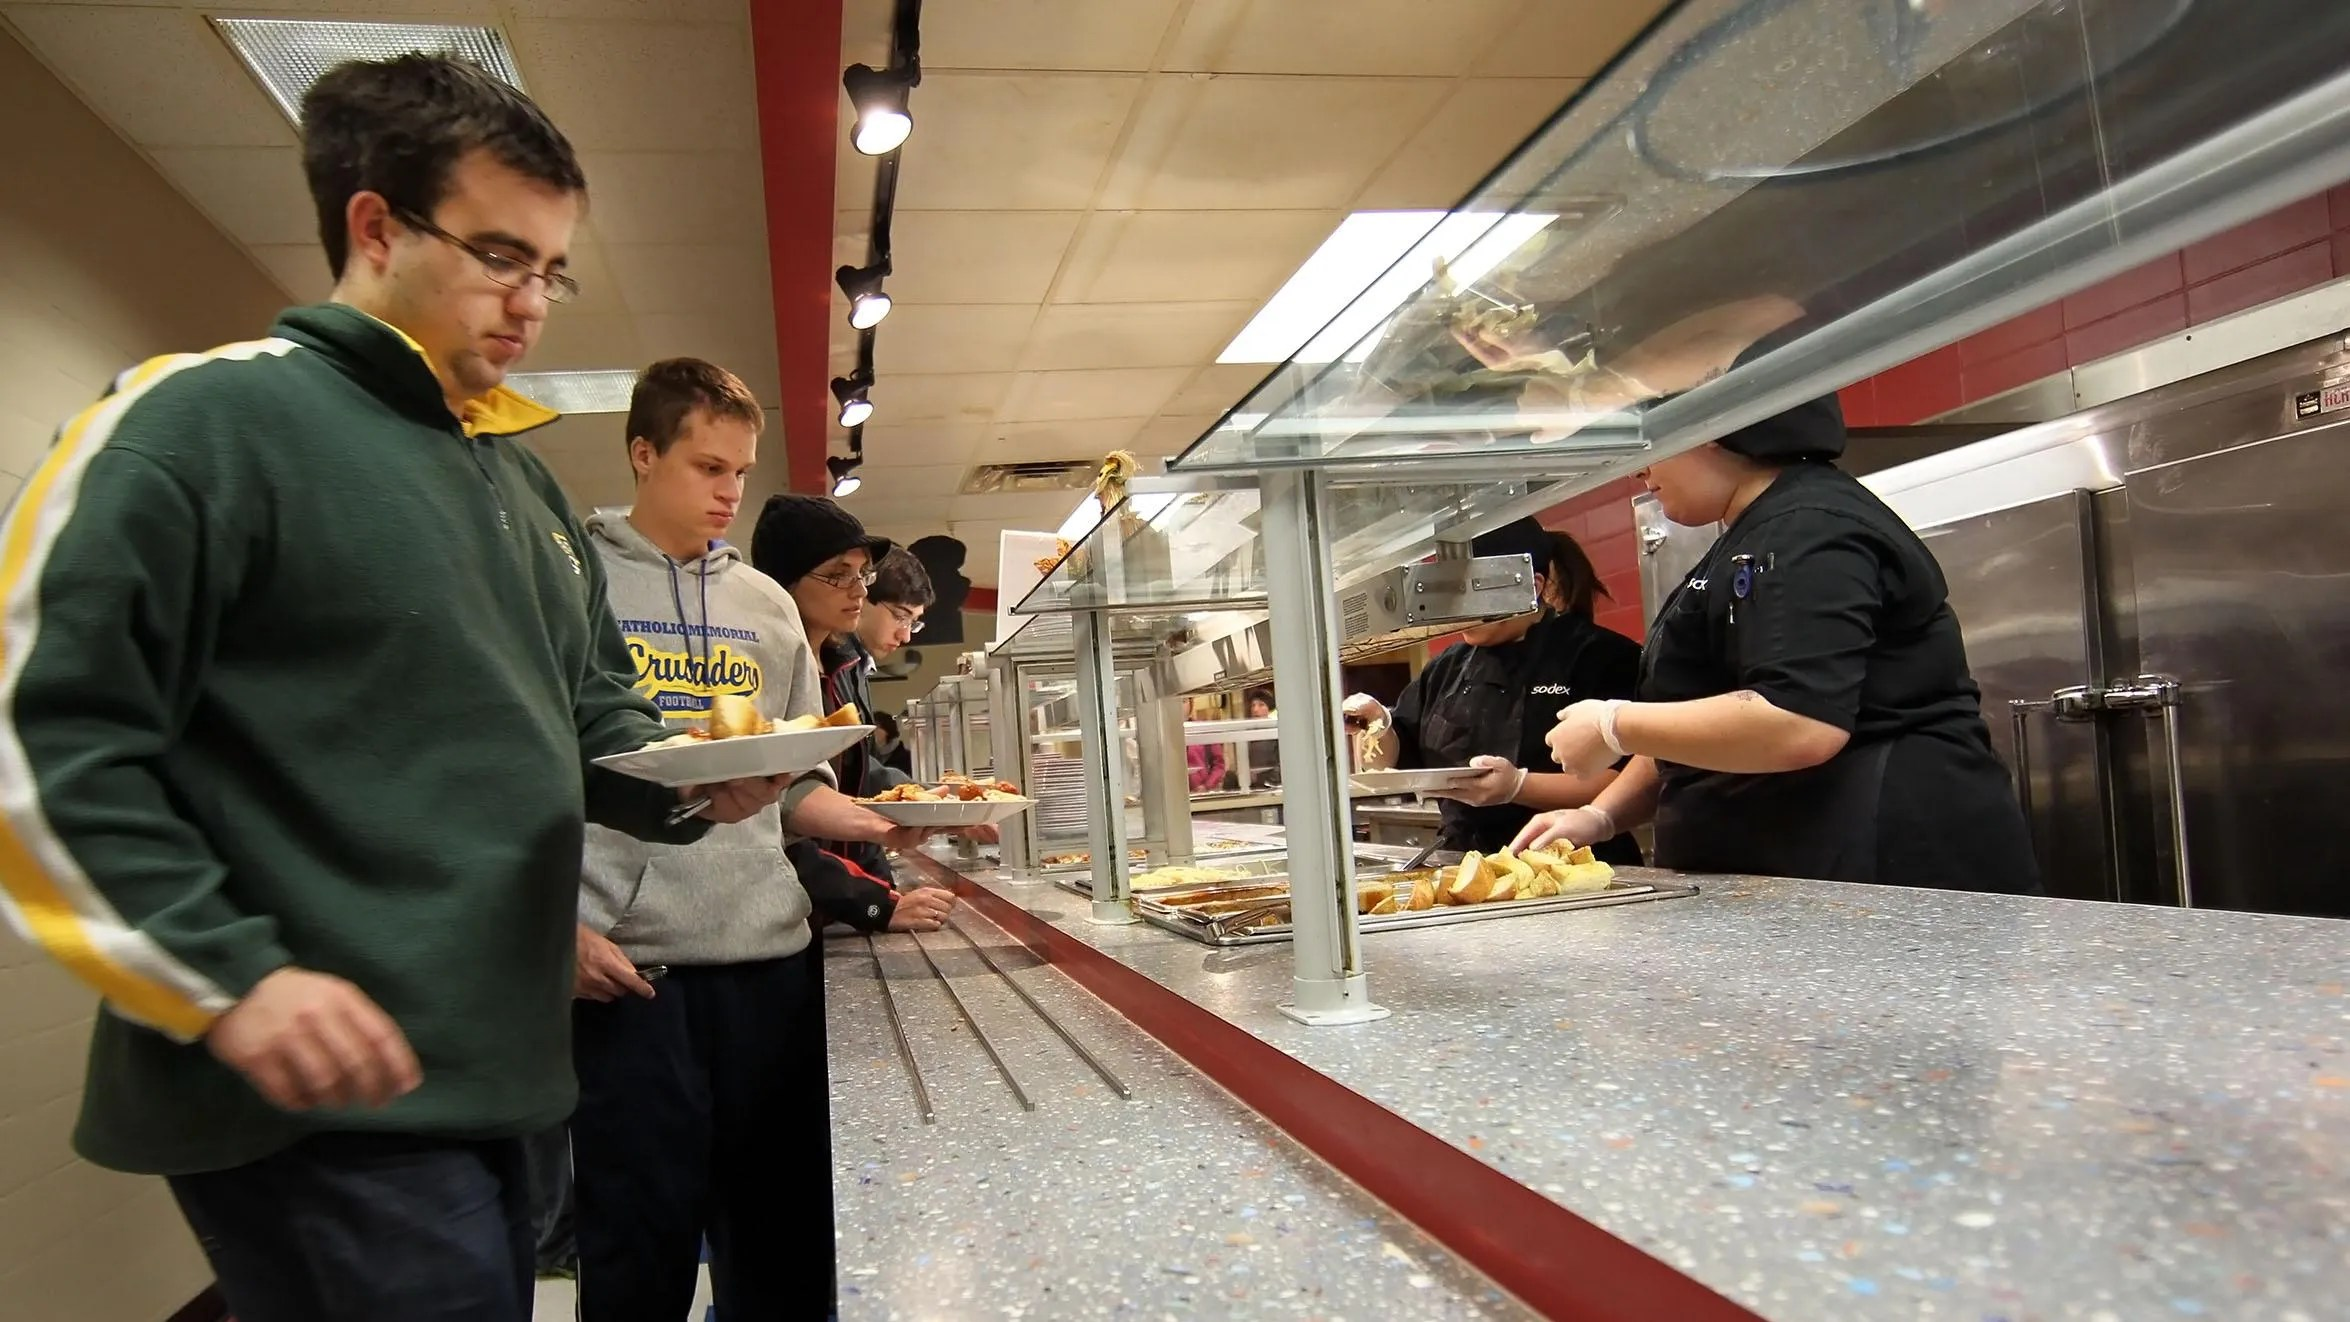 OPINION: College students aren't hungry, they're lazy